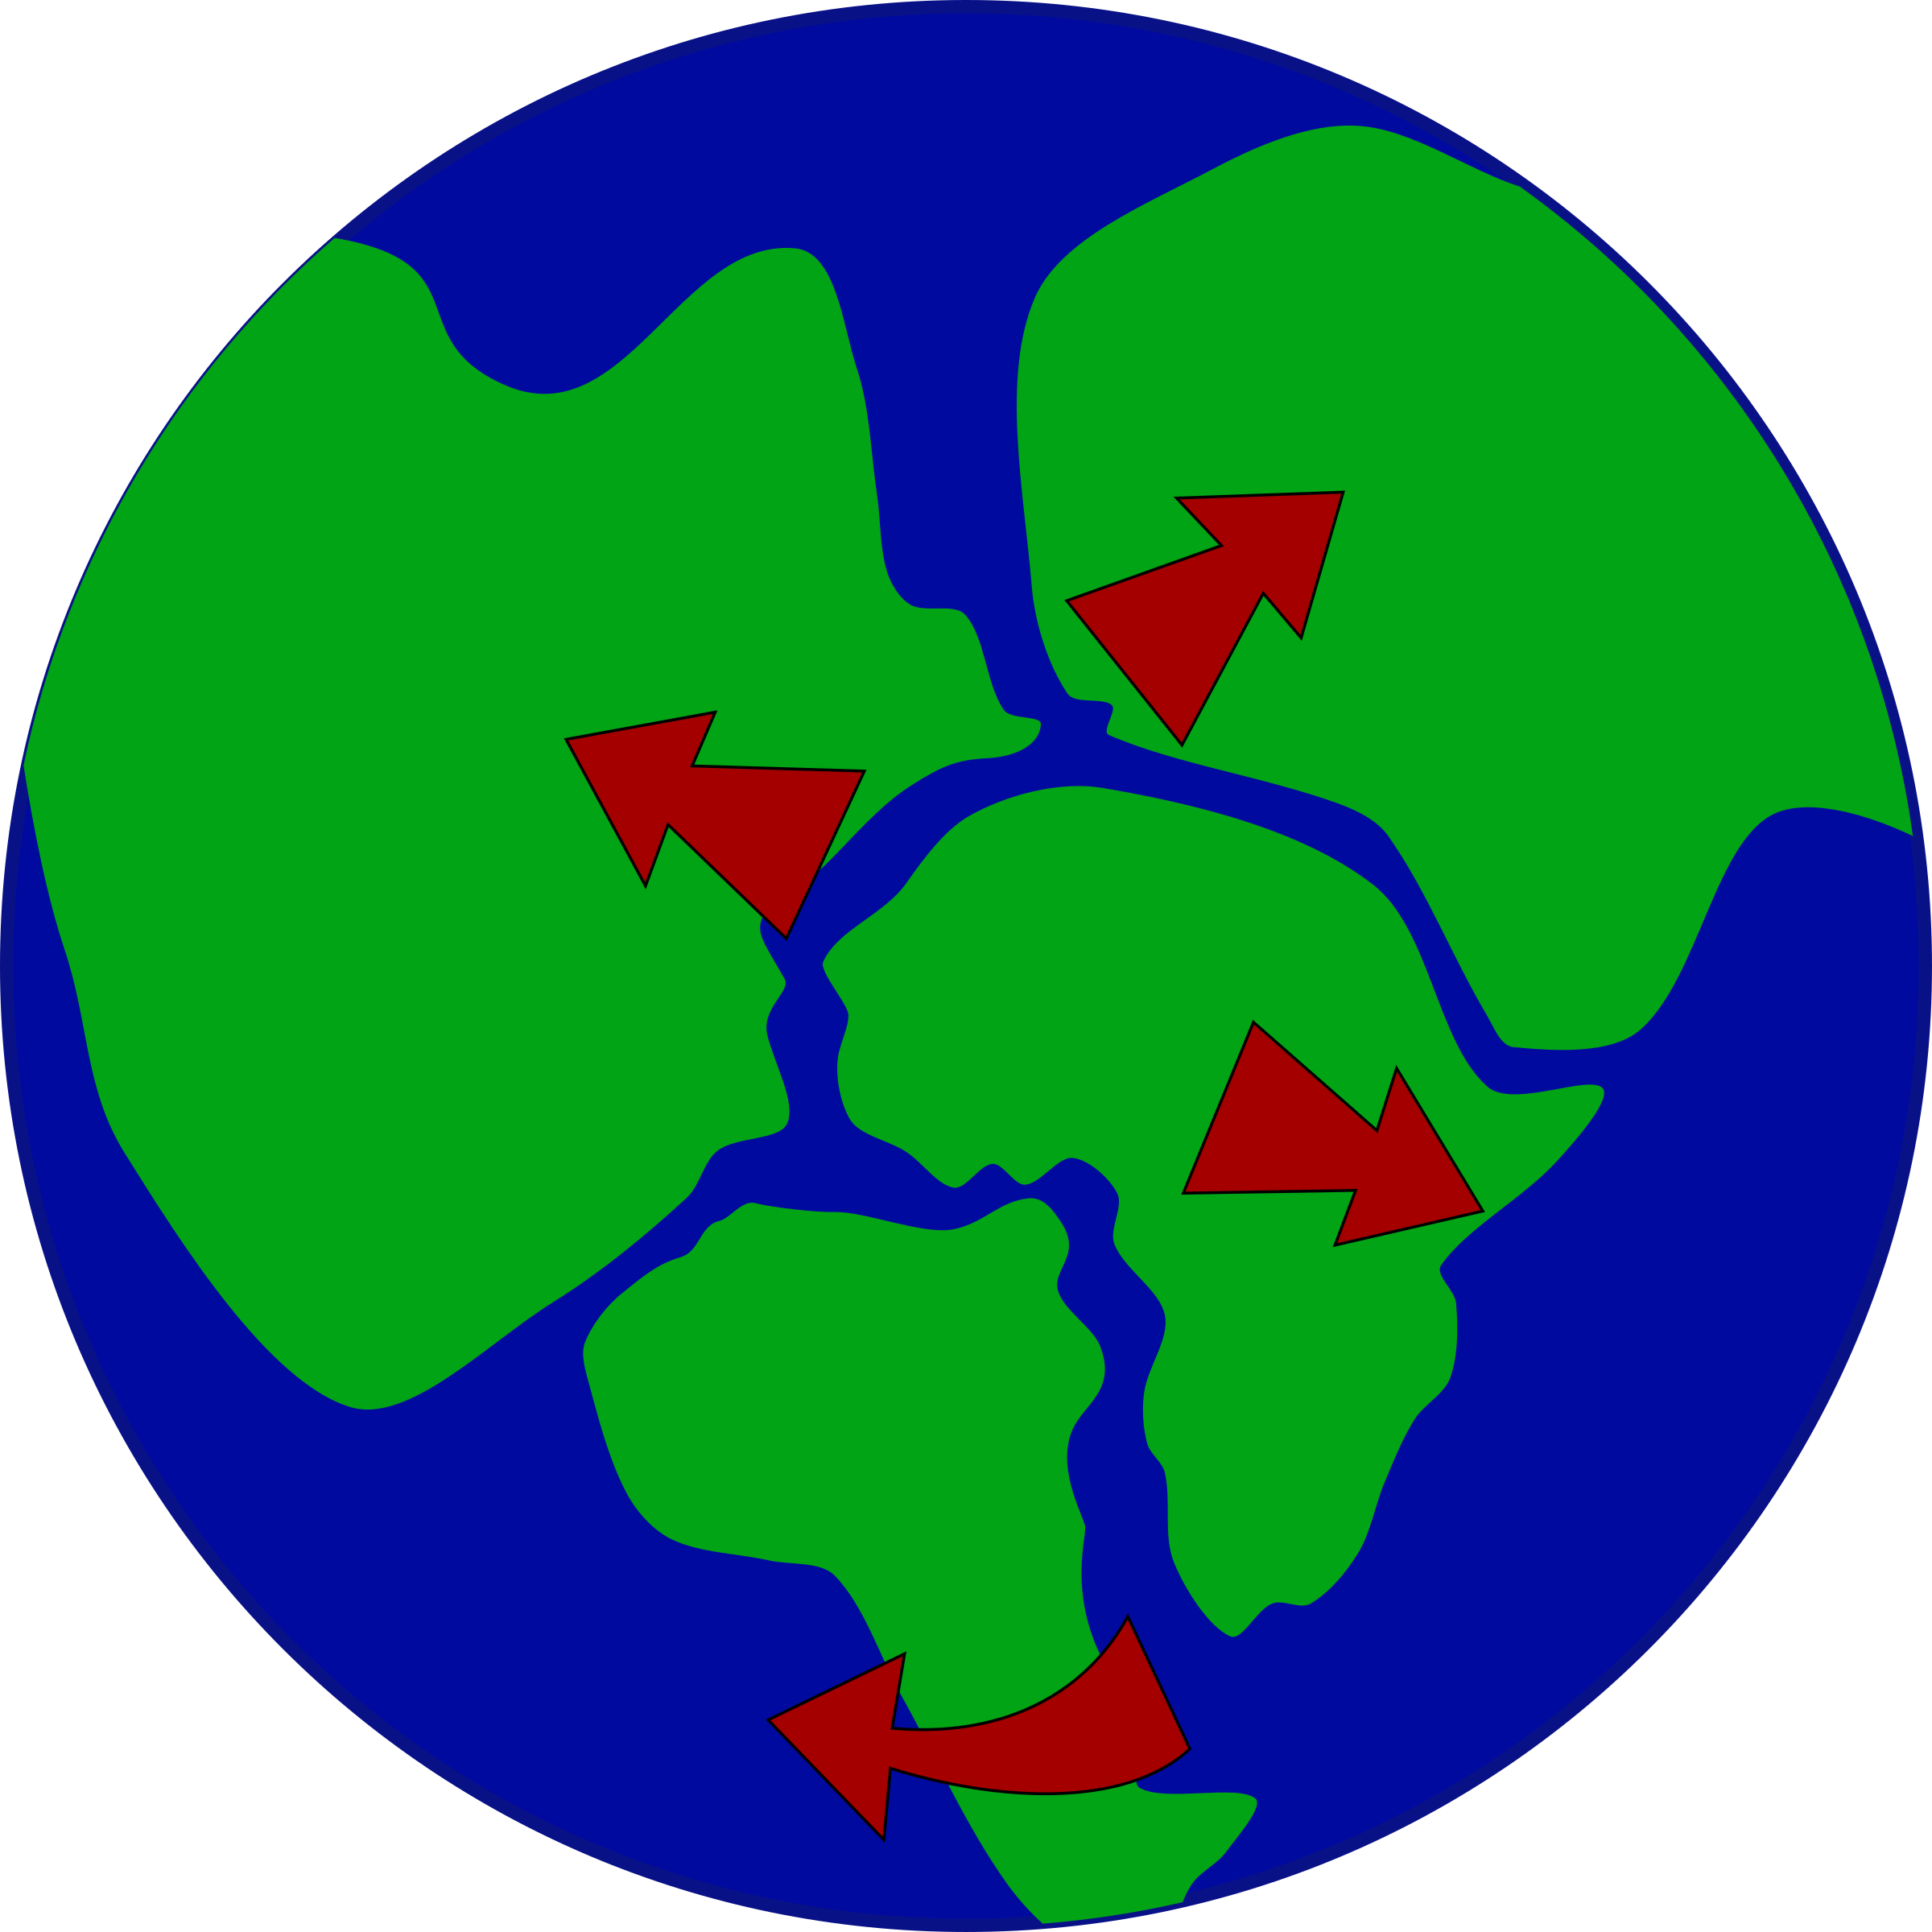 Earth with continents breaking up by jonadab